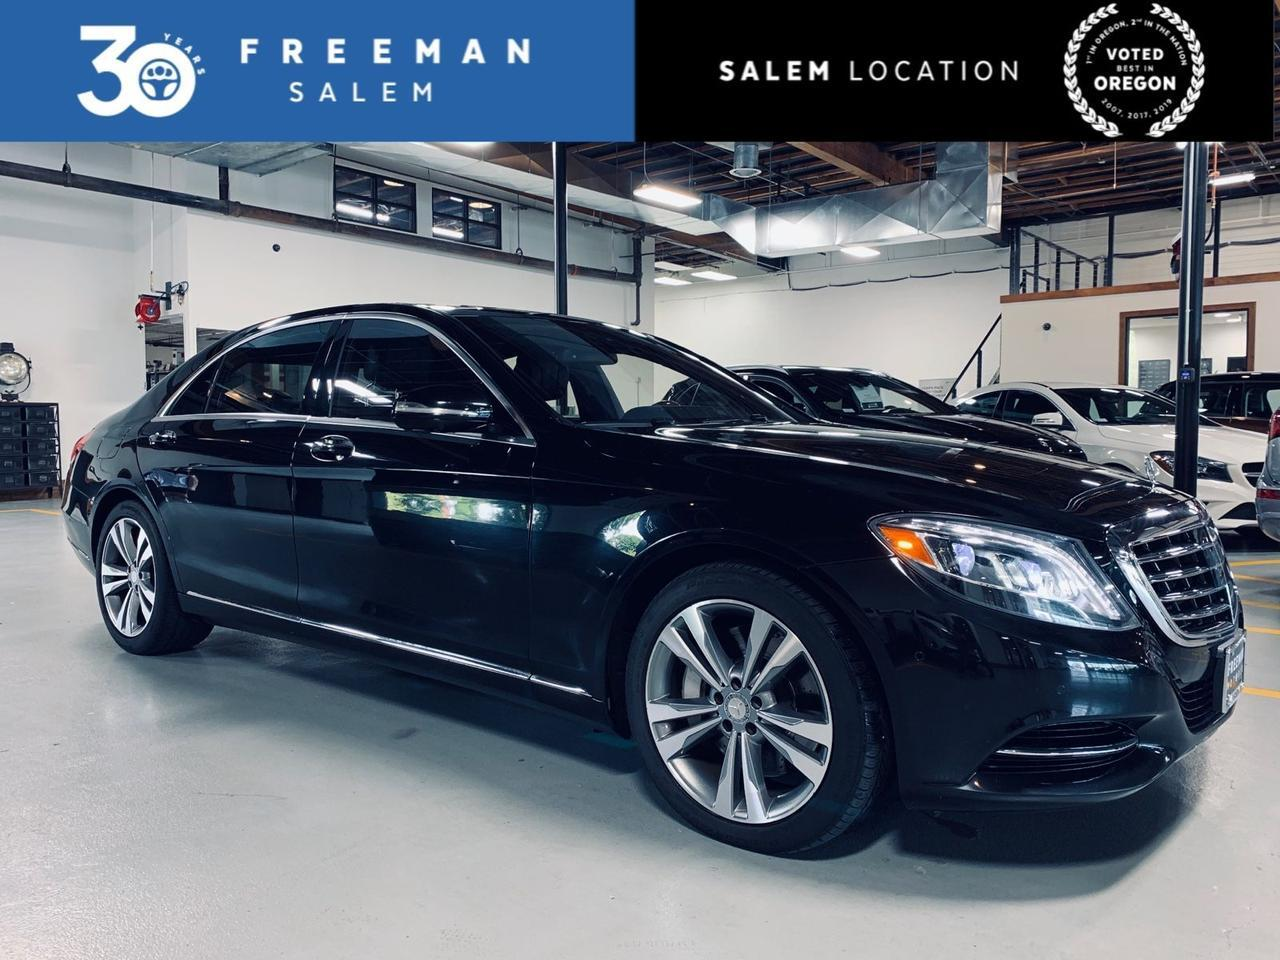 2015 Mercedes-Benz S 550 4MATIC Distronic Plus Lane Keep Assist Salem OR